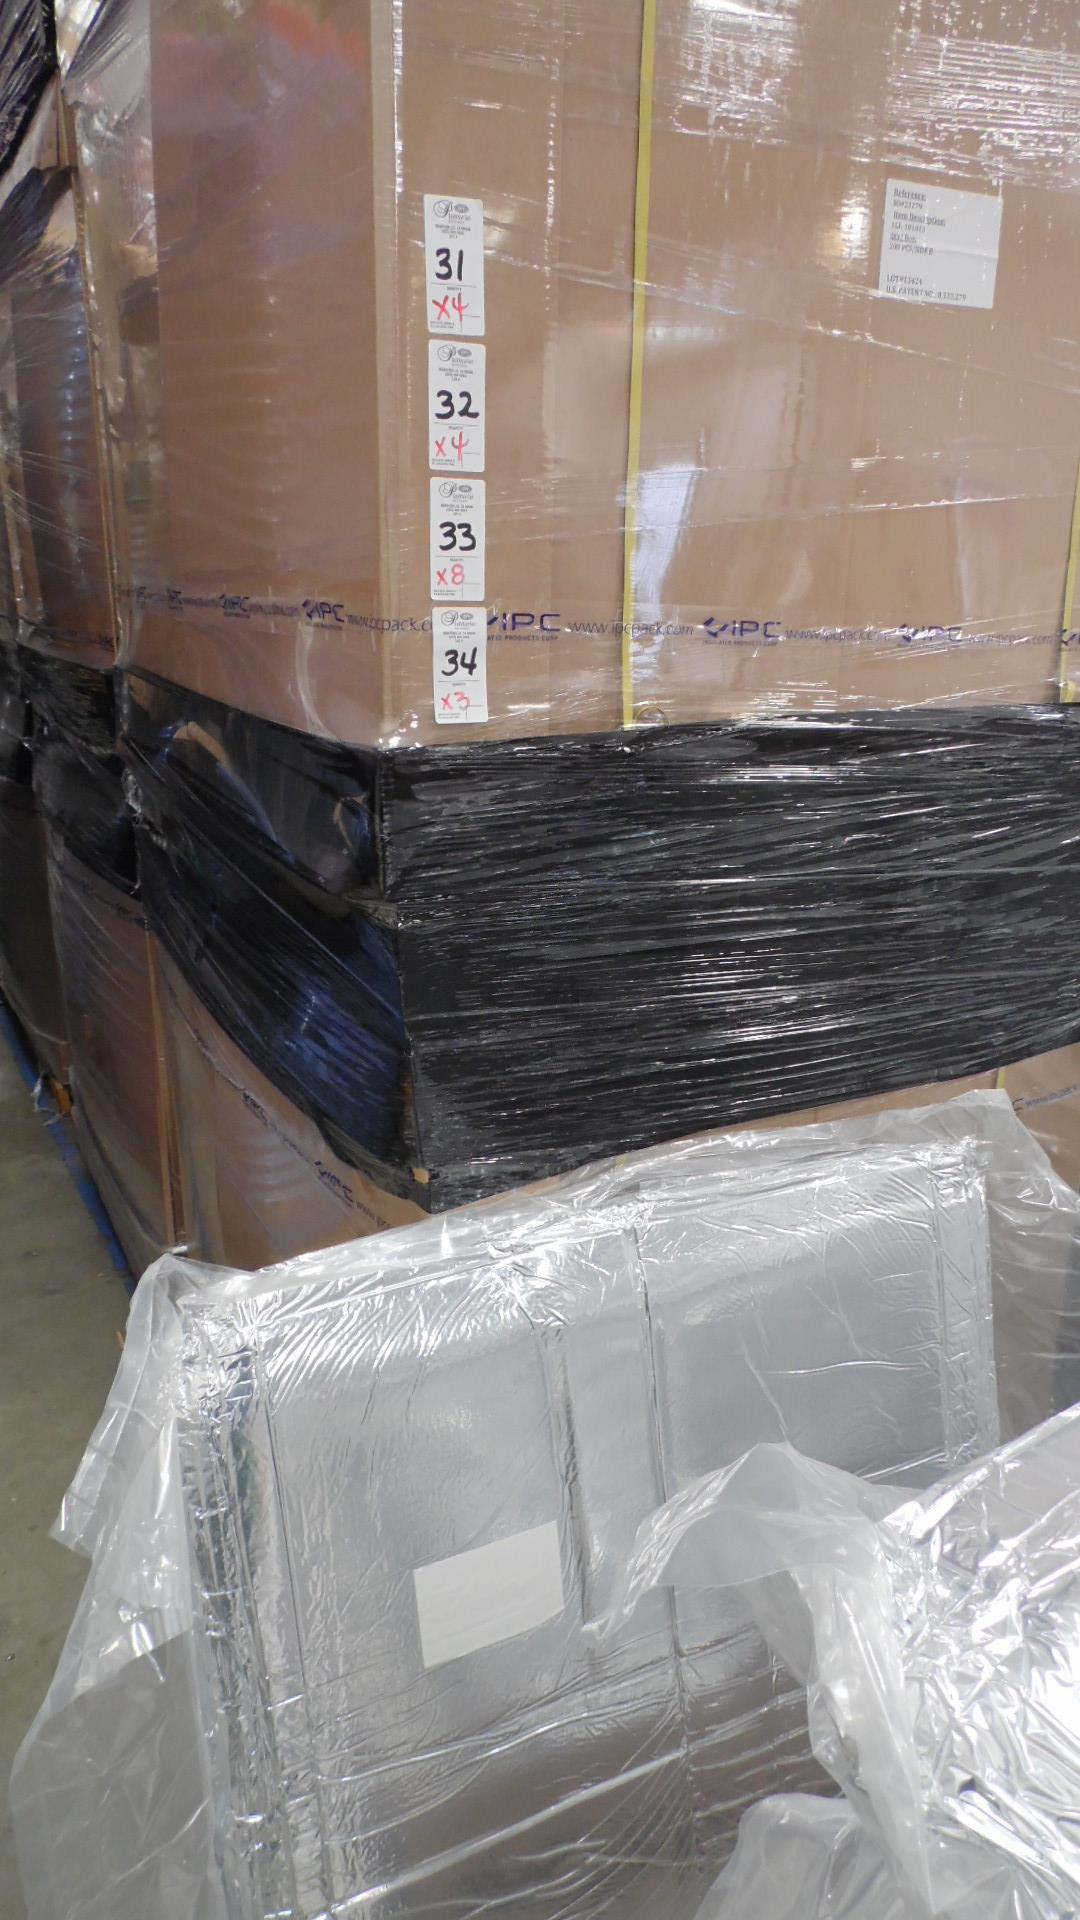 Lot 31 - INSULATED PACKS 15X11X11 (QTY 400)